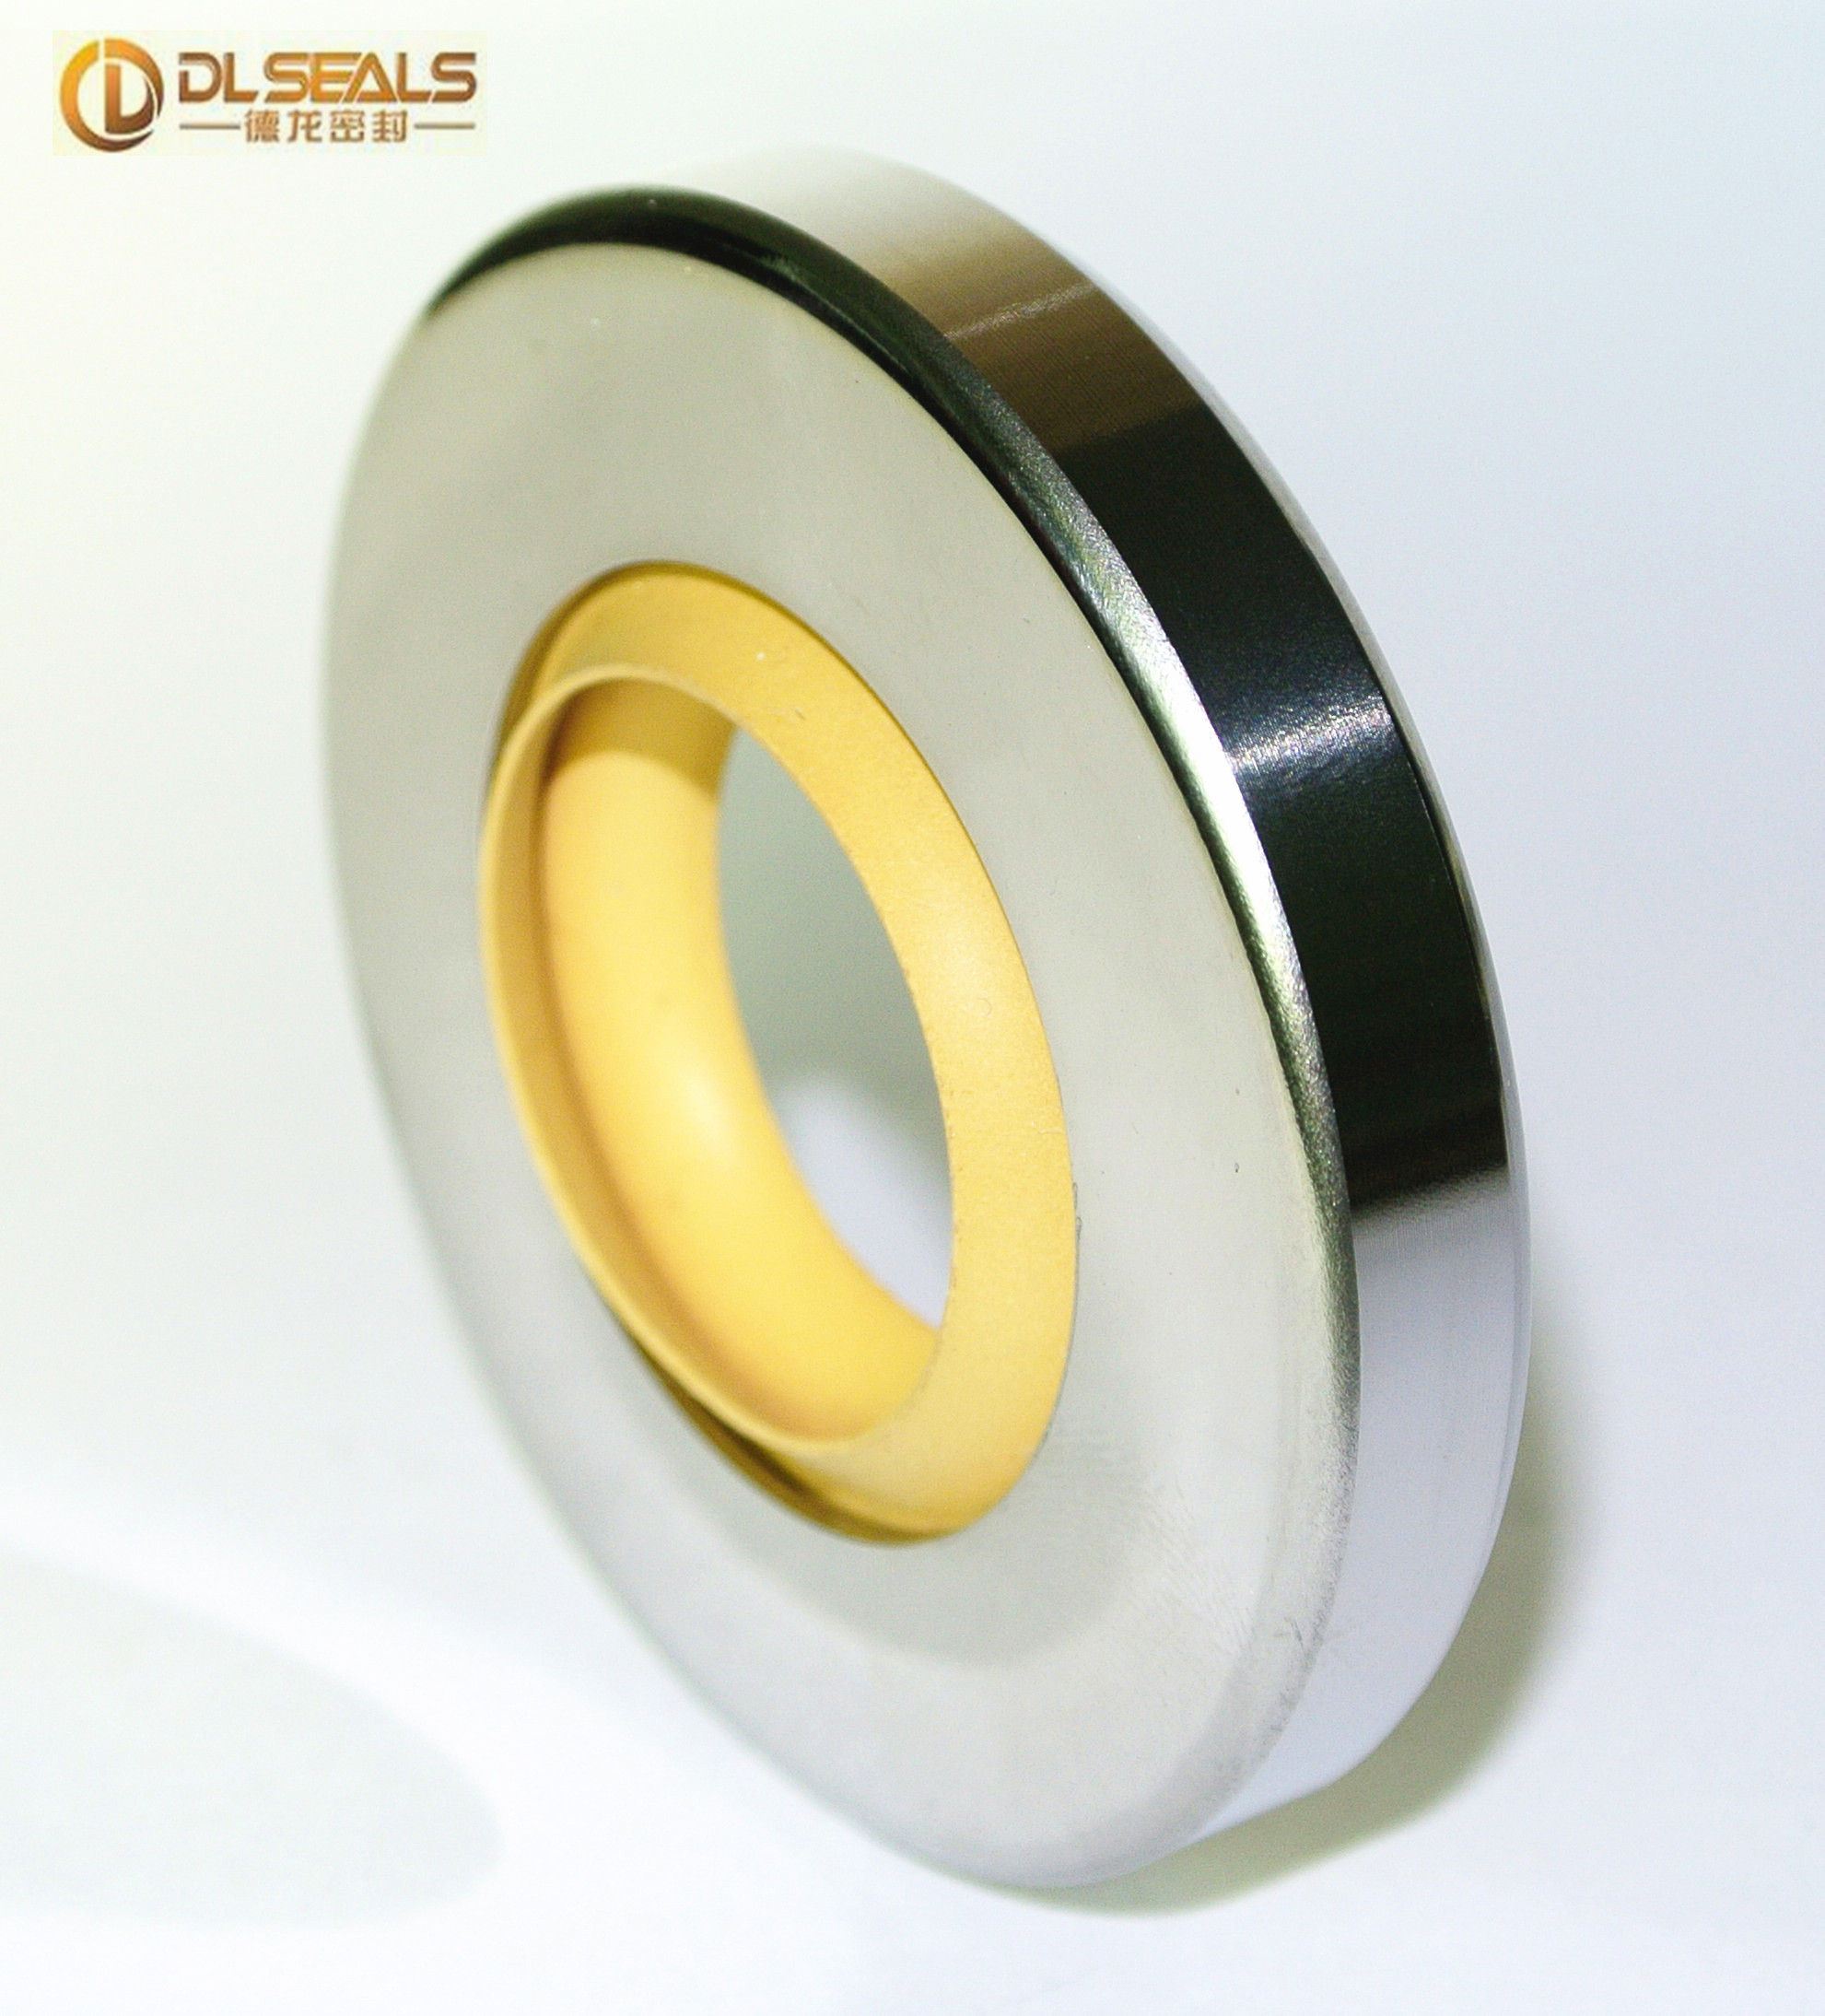 High quality hermetically sealed compressors PTFE lip seal 50*60*7